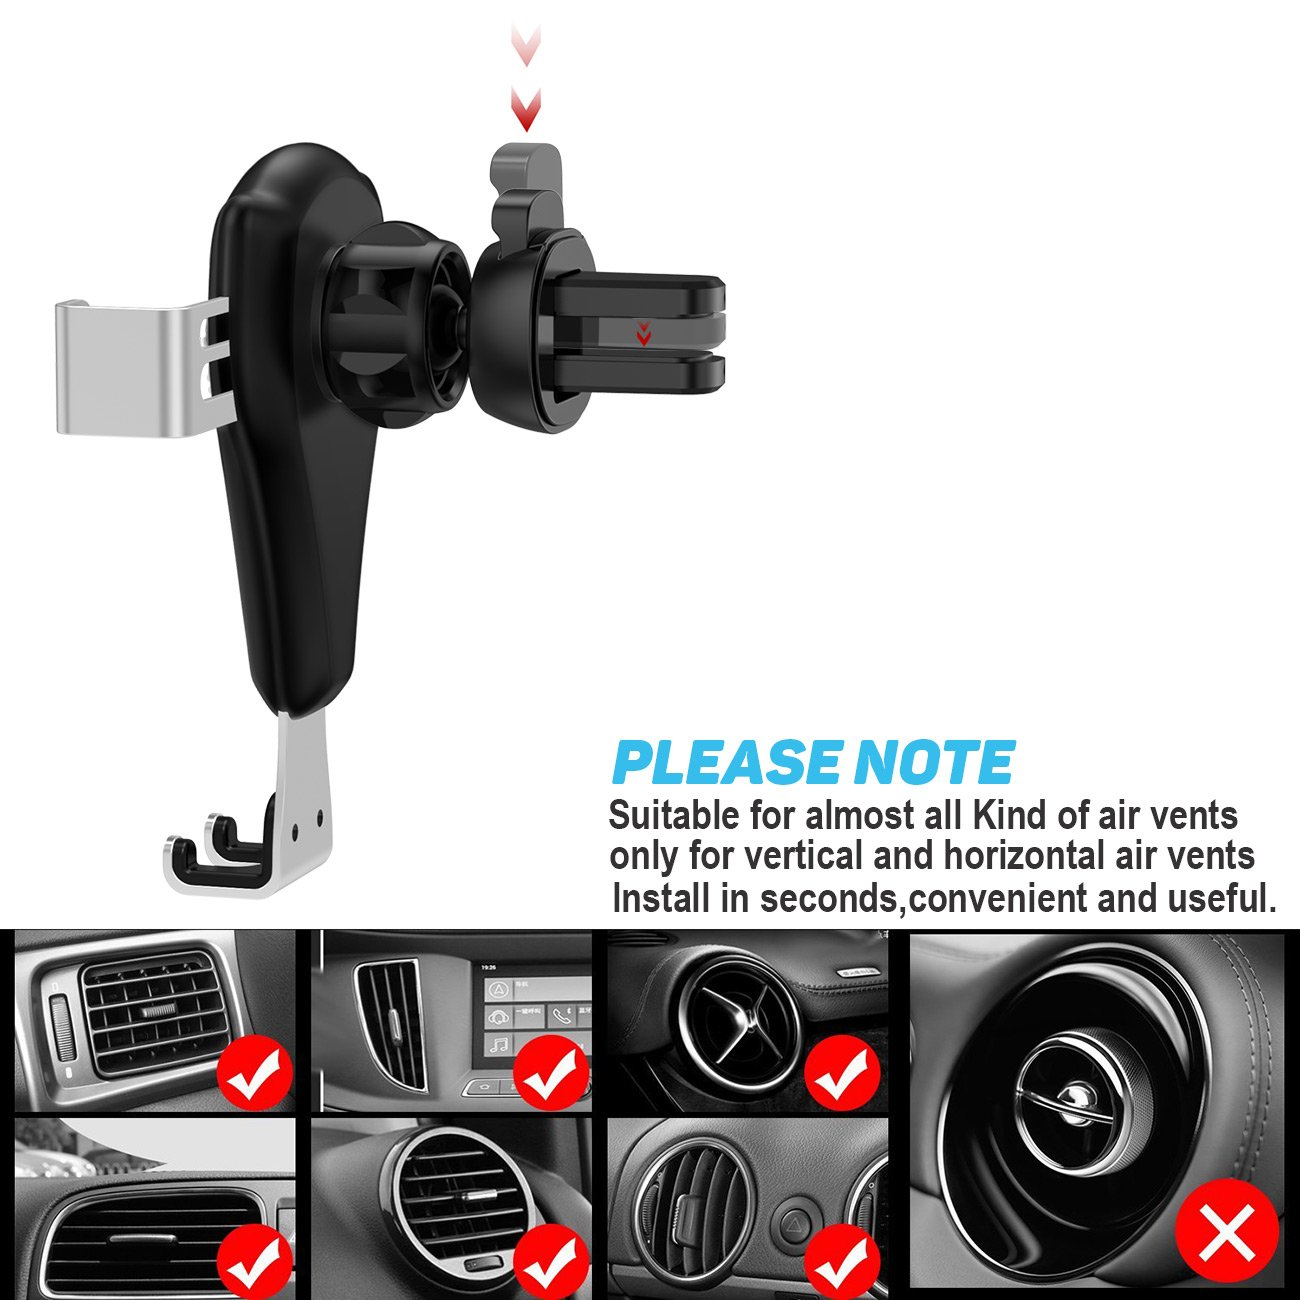 Car Phone Holder,Sztook Gravity Phone Mount,Universal Car Air Vent Mount Cradle Stand Holder for iPhone 7//7P//6s//6P//5S,Samsung Galaxy S5//S6//S7//S8,Google,LG,Huawei,Nexus,other Smartphones US-C-00067-SR